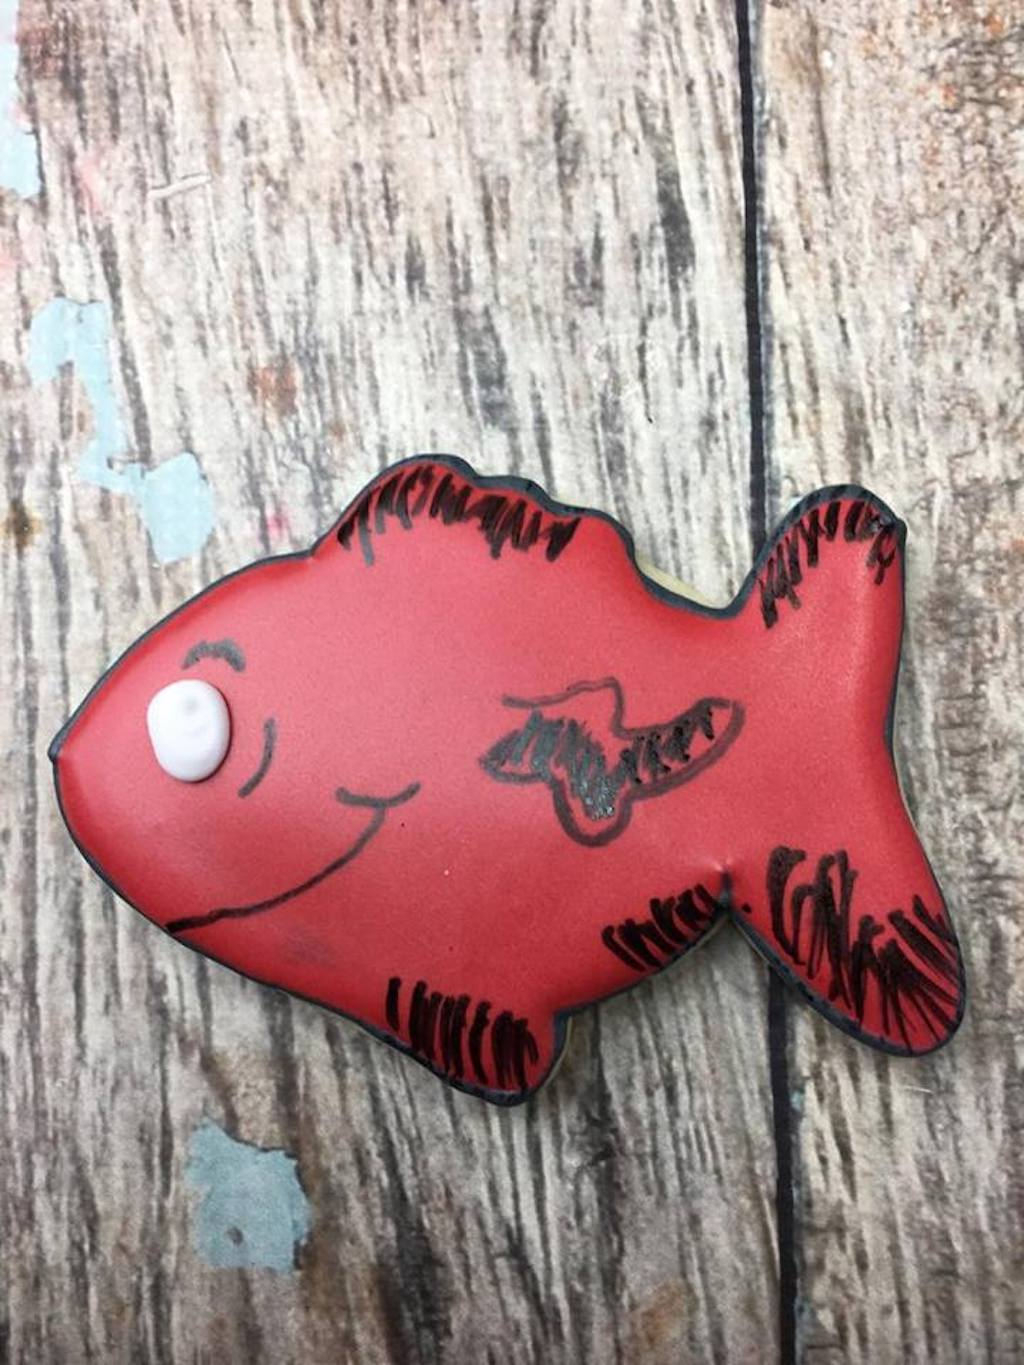 Celebrating Dr. Seuss' birthday with another recipe highlighting one of his books. The One Fish Two Fish Red Fish Blue Fish Cookie recipe is a fun recipe that kids will love and easy to make.